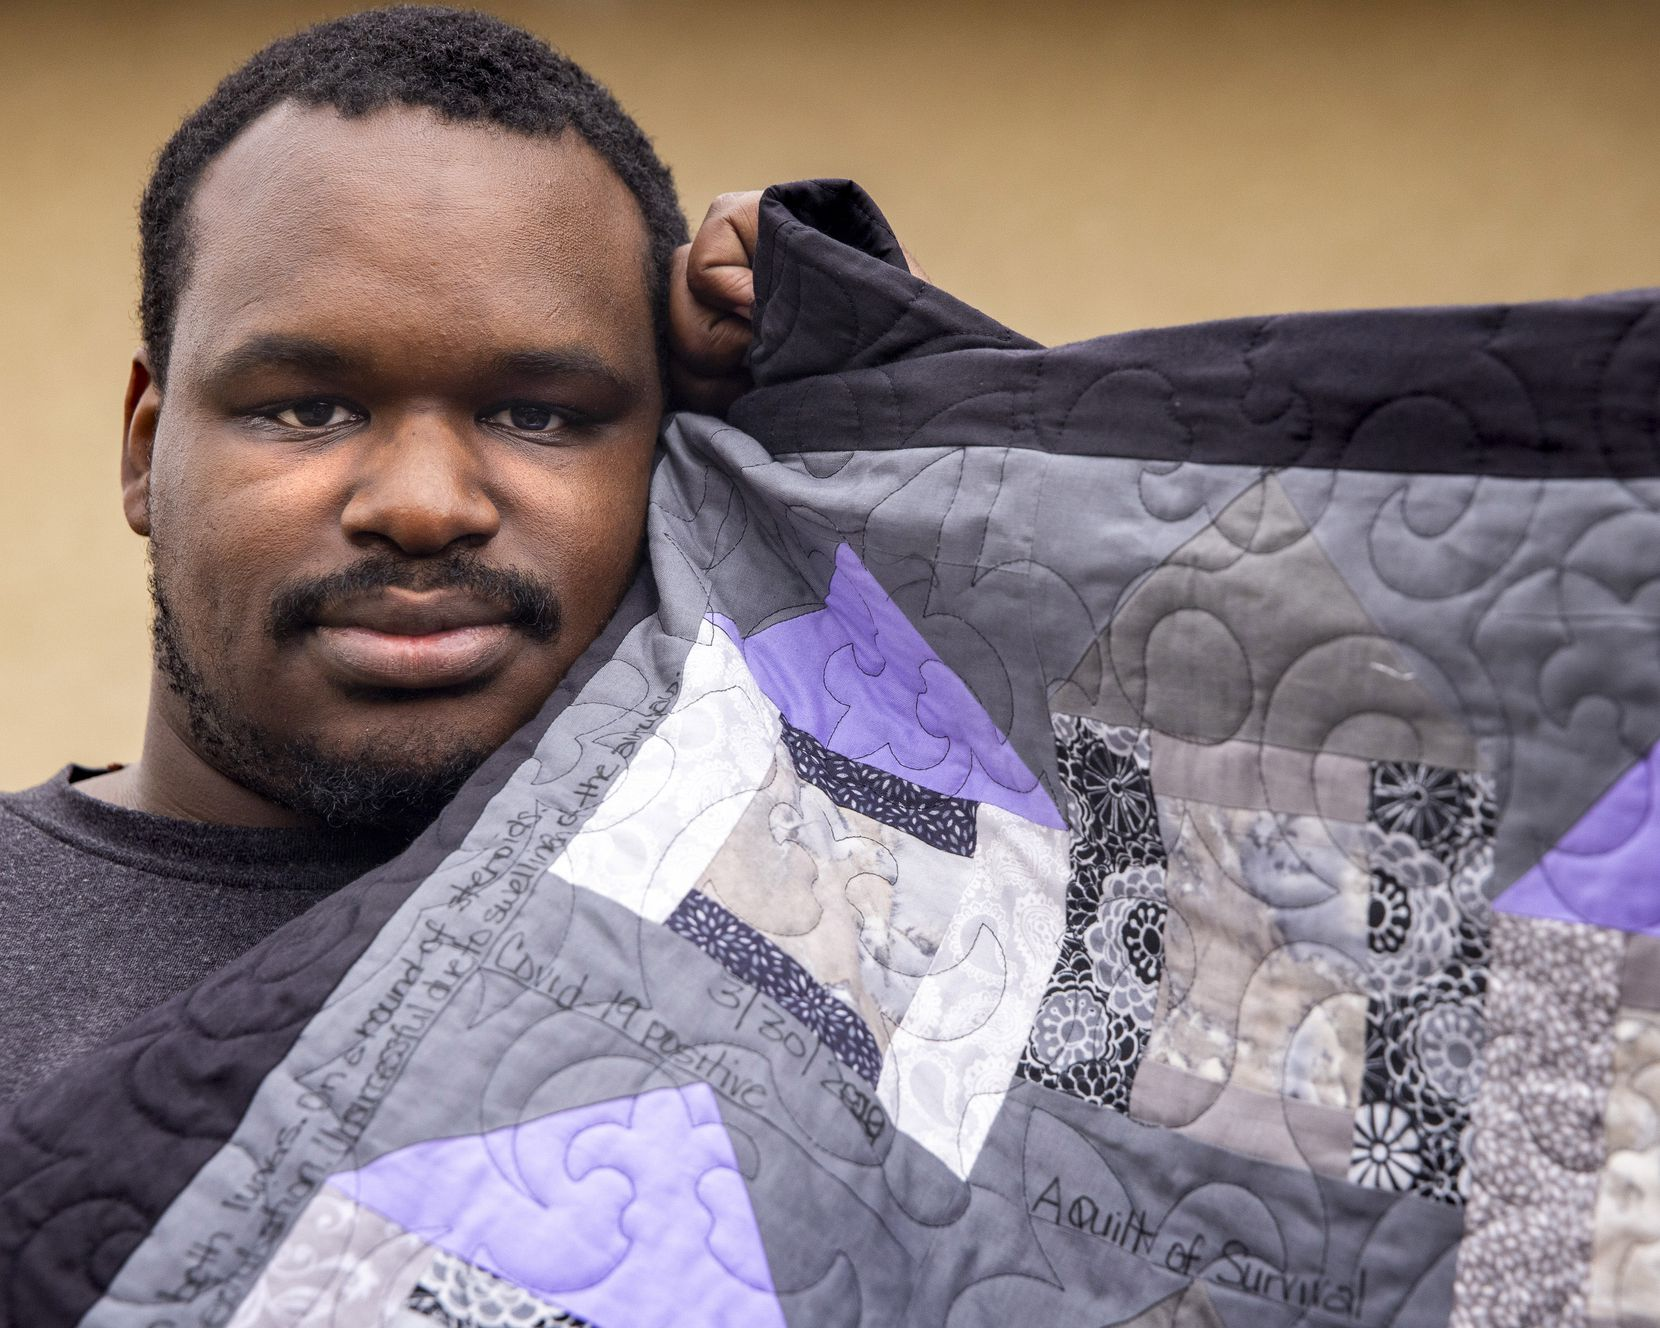 Kerry Parks poses with the survivor's quilt that his mother-in-law, Marva Stephens, began sewing for him shortly after he was released from Parkland.